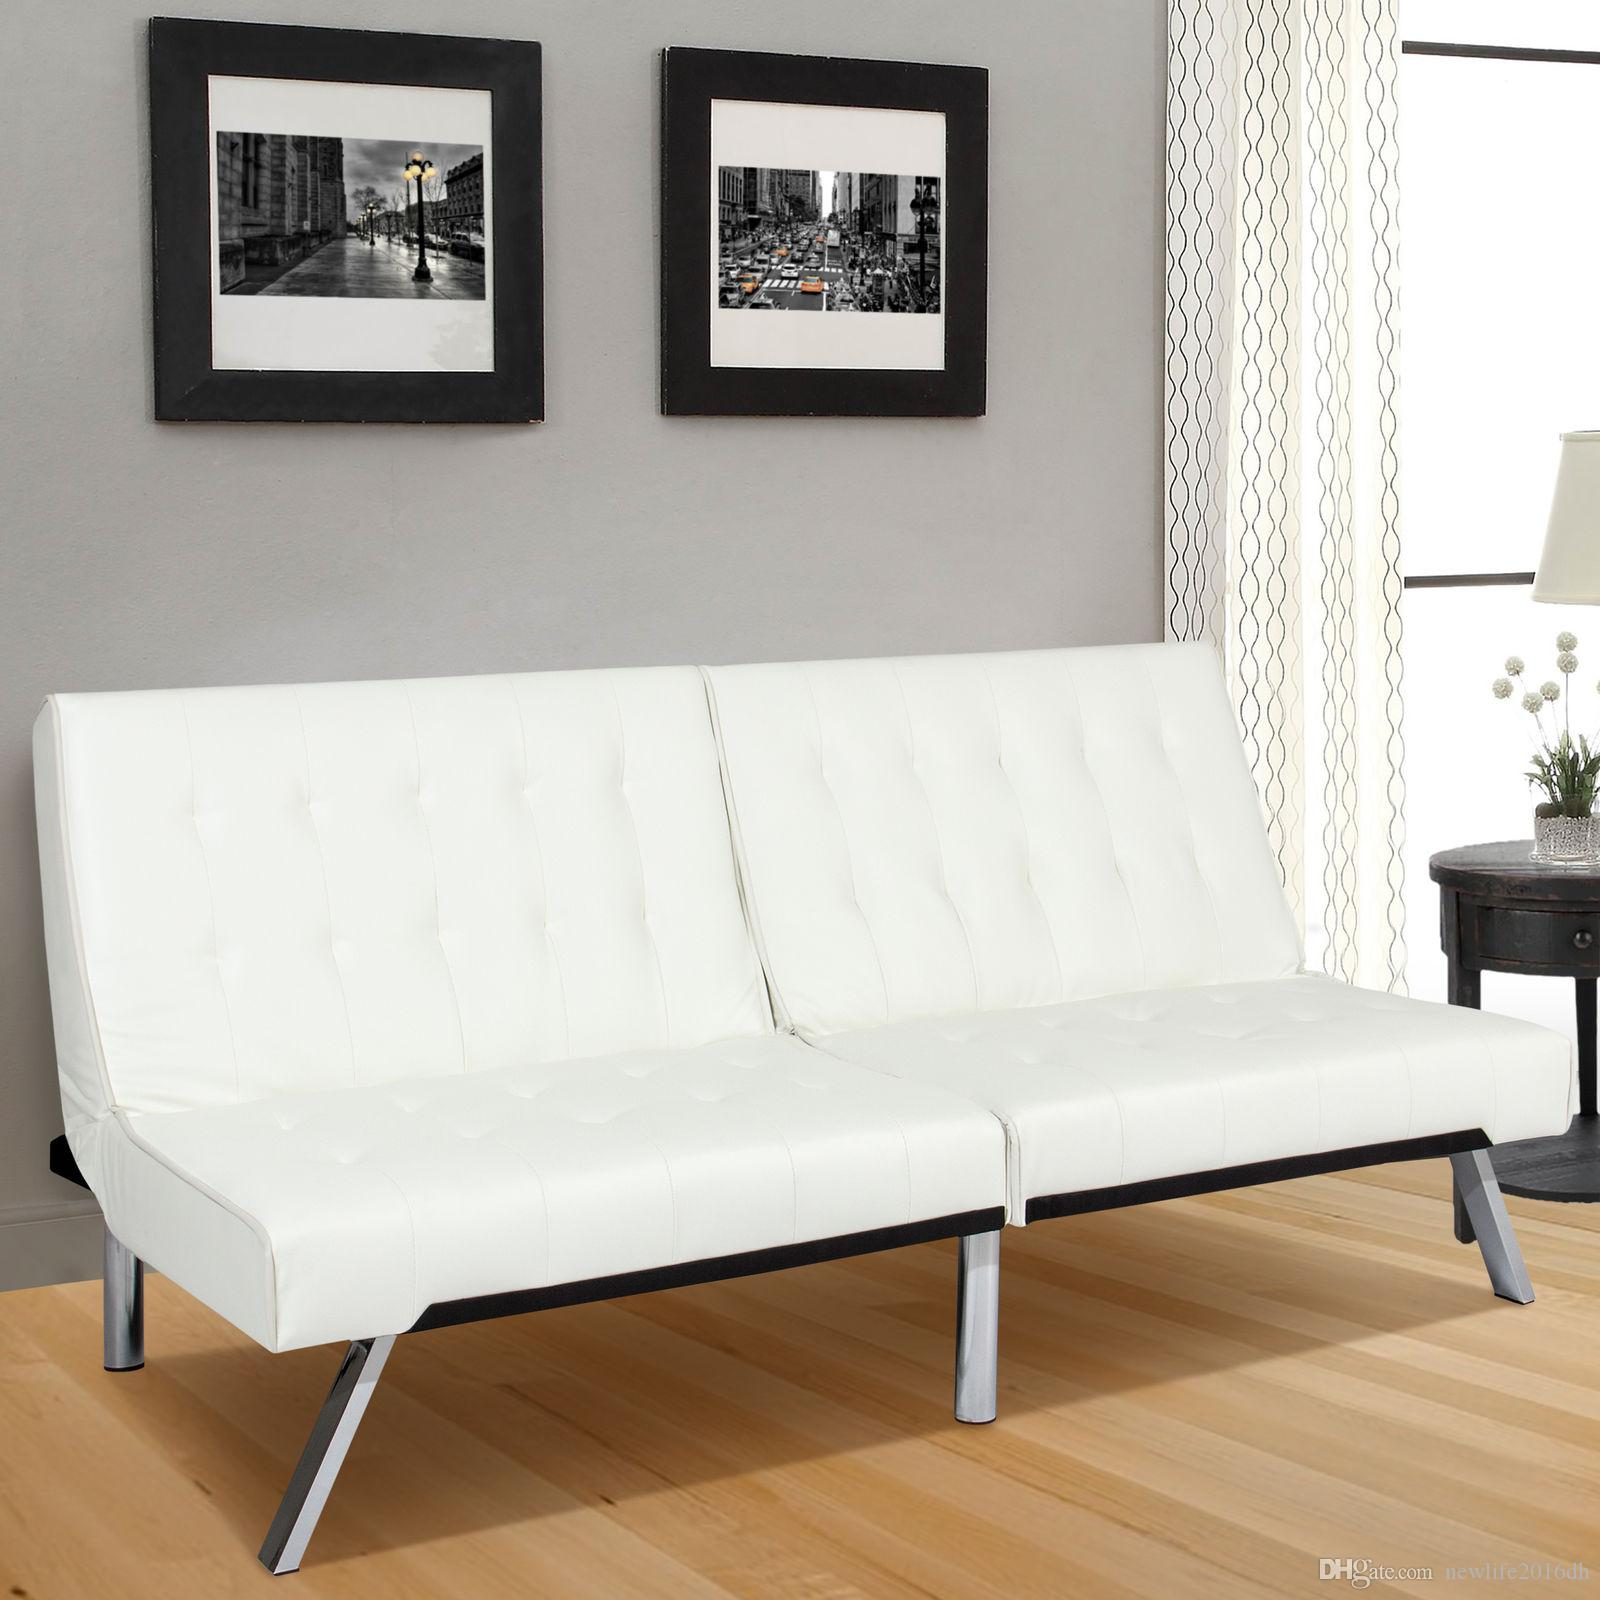 2019 Modern Leather Futon Sofa Bed Fold Up & Down Couch Recliner Lounger  Sleeper Whte From Newlife2016dh, $149.75 | DHgate.Com